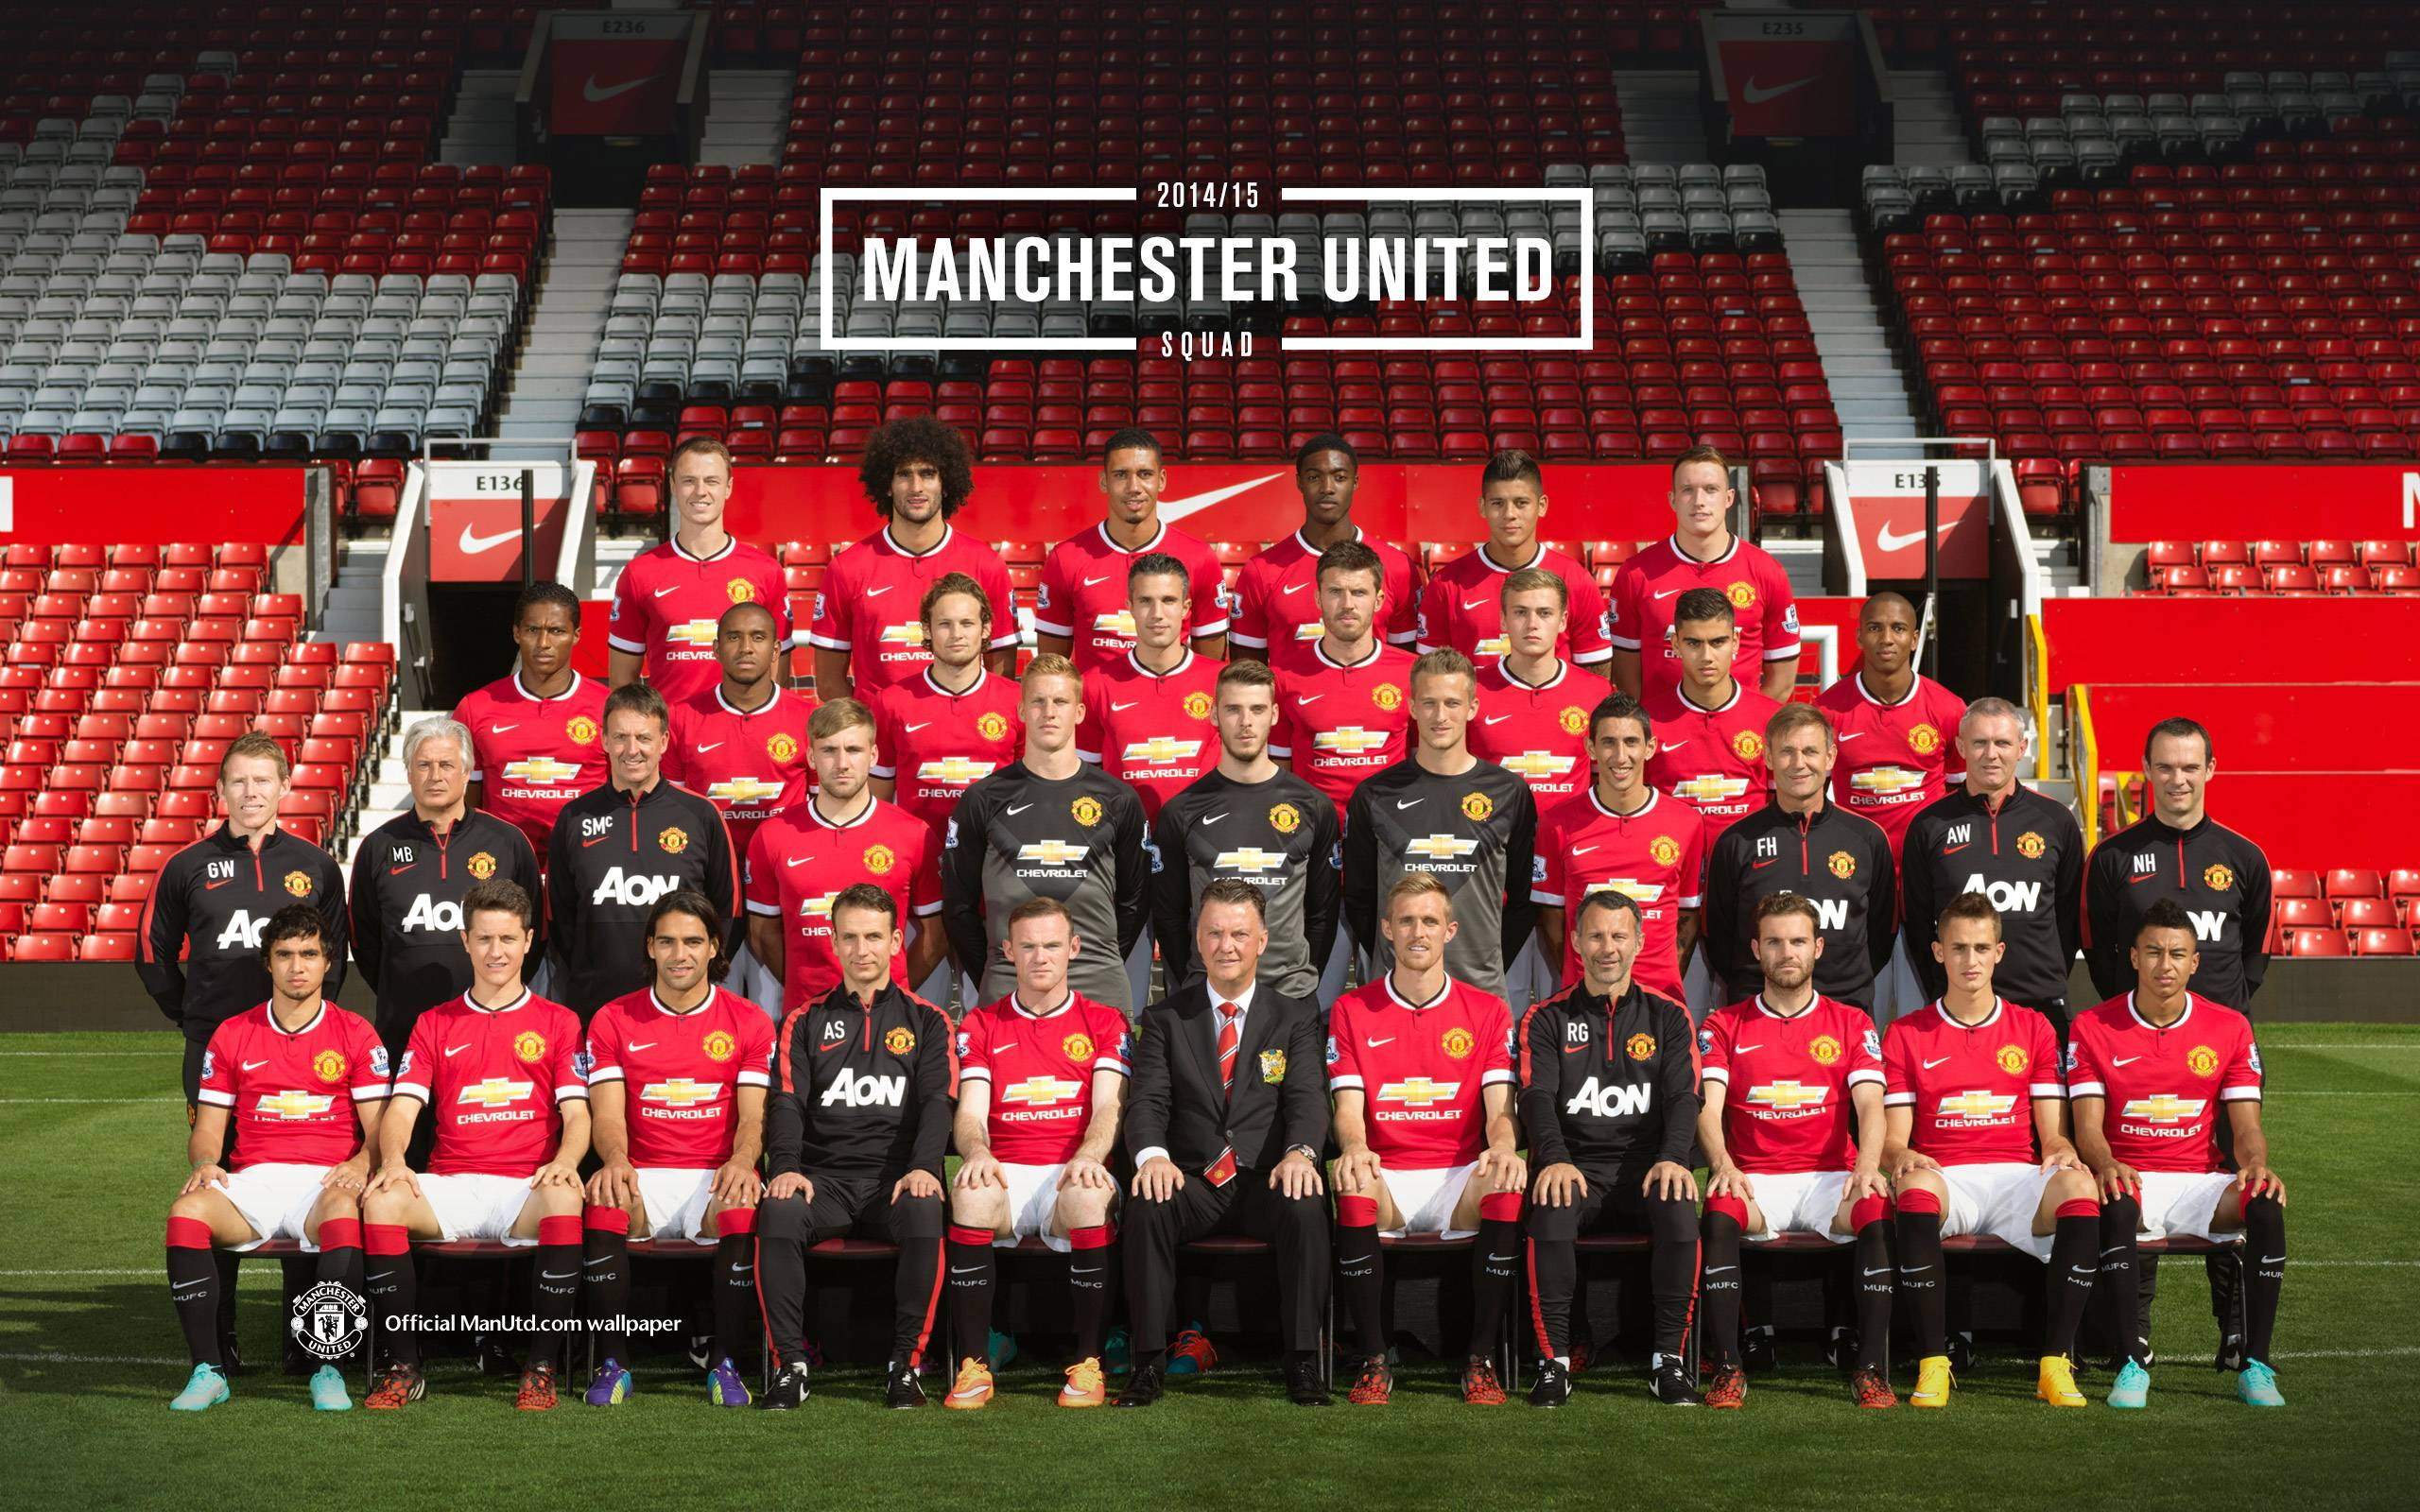 Skuad Manchester United 2014